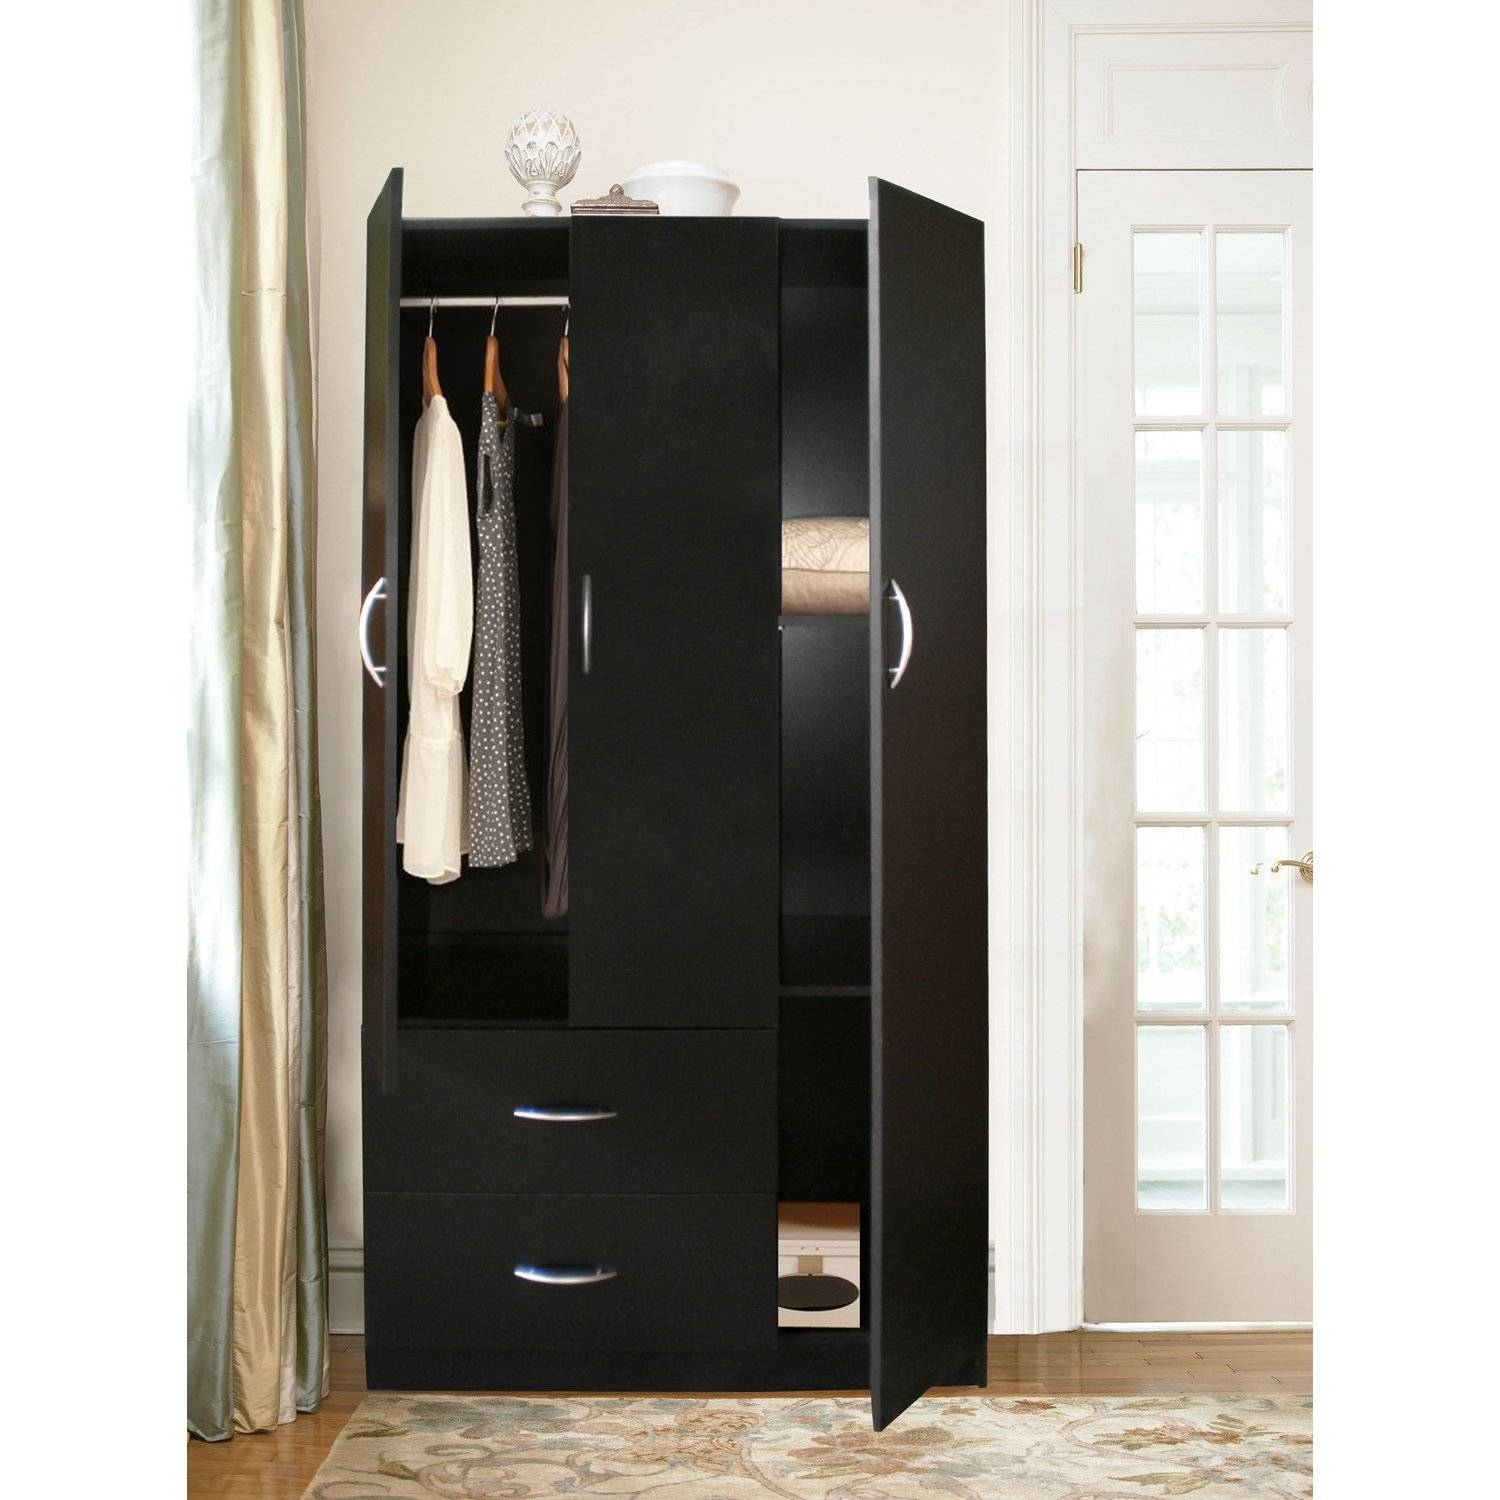 Furniture: Fancy Wardrobe Armoire For Wardrobe Organizer Idea with regard to Single Black Wardrobes (Image 4 of 15)